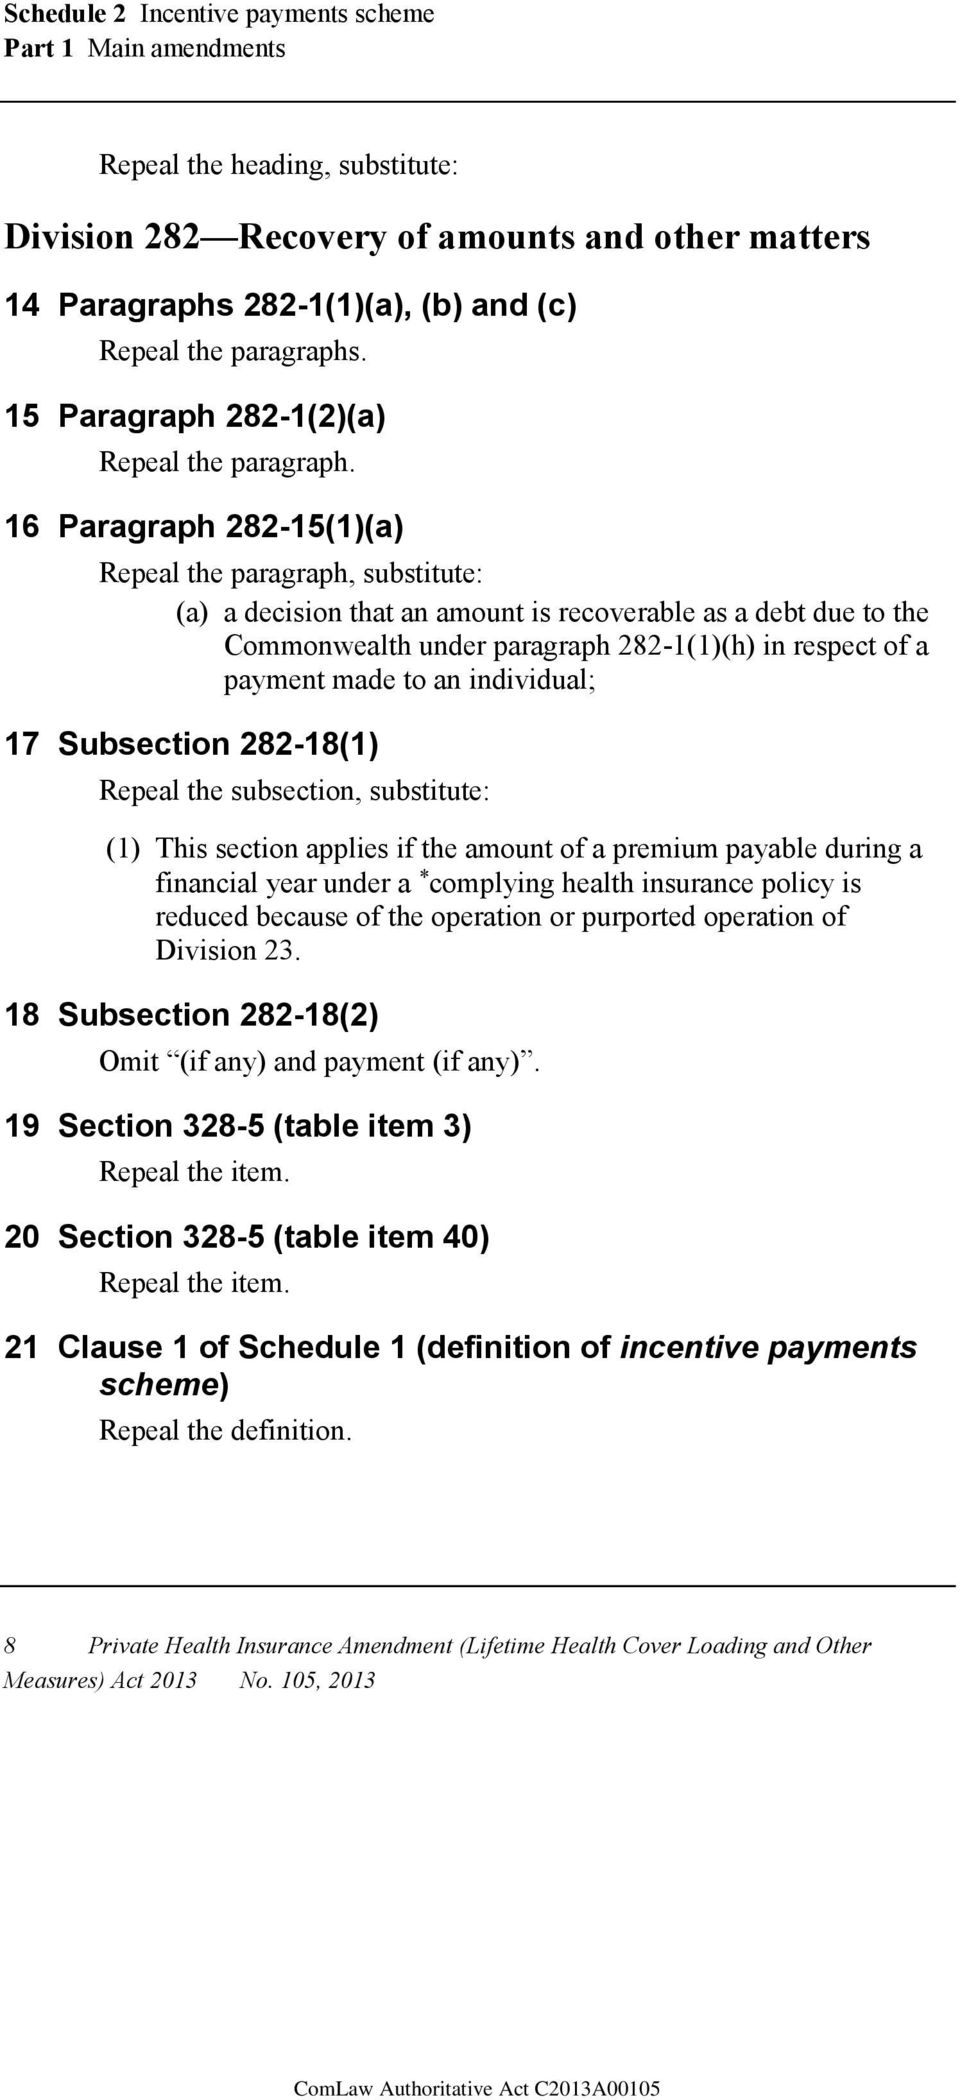 16 Paragraph 282-15(1)(a) Repeal the paragraph, substitute: (a) a decision that an amount is recoverable as a debt due to the Commonwealth under paragraph 282-1(1)(h) in respect of a payment made to